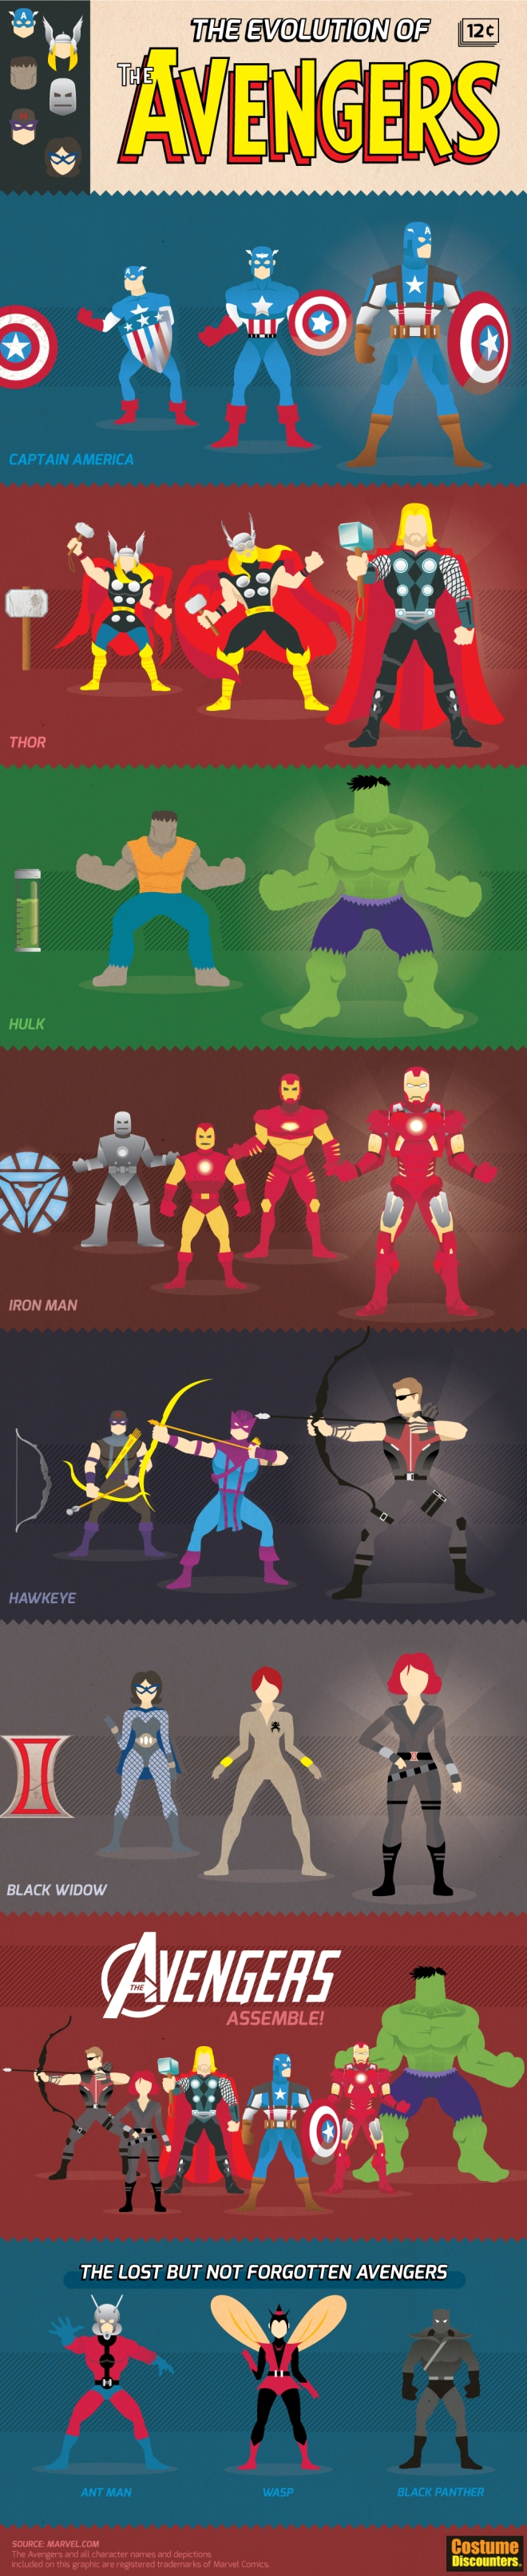 Evolution-of-the-Avengers-v4